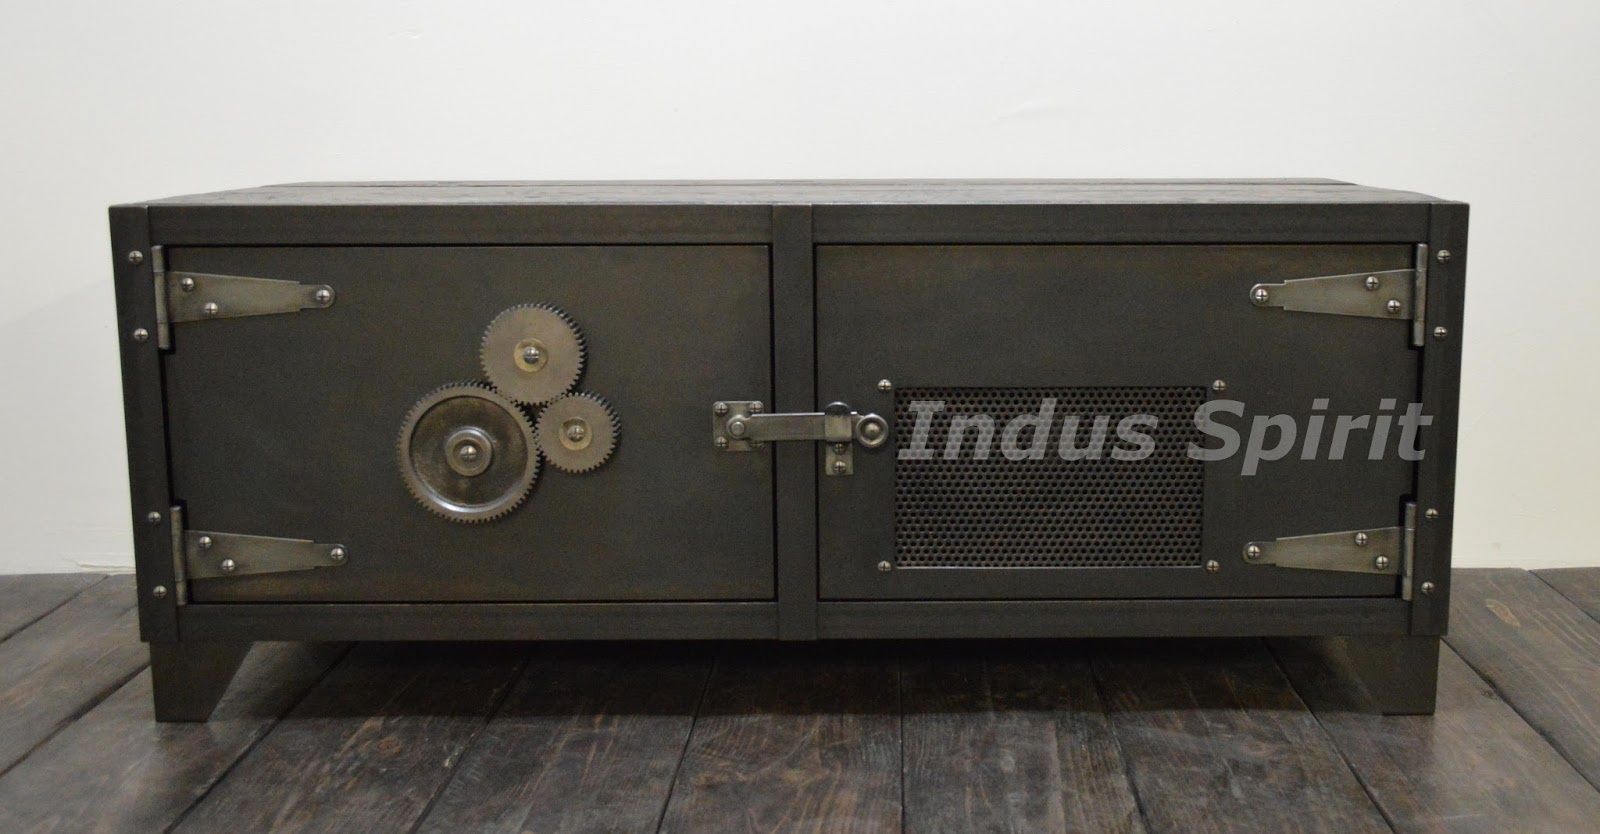 Design Industriel Meuble Meuble Tv Design Industriel